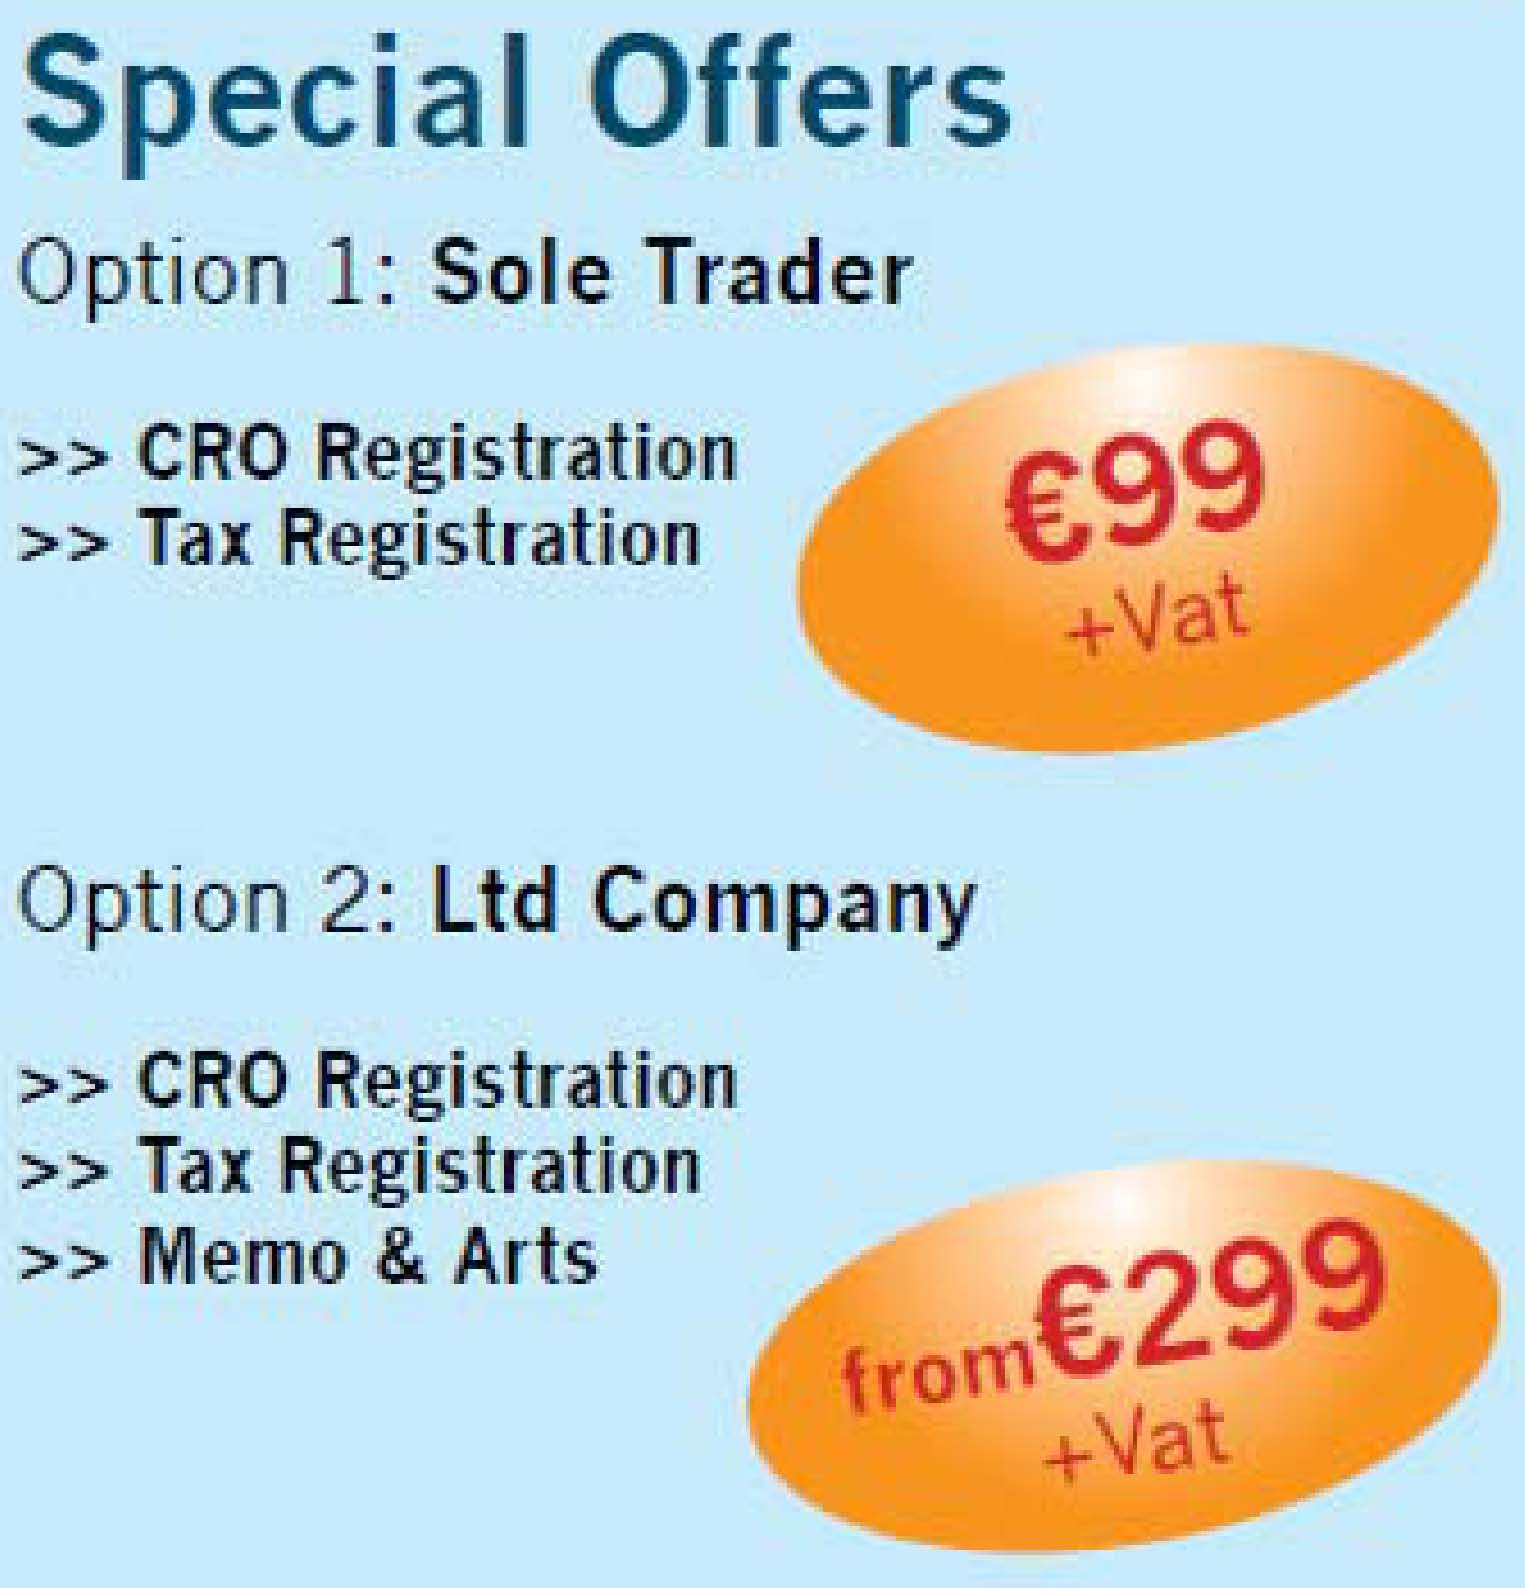 sole trader companies Sole trader limited - free company information from companies house including registered office address, filing history, accounts, annual return, officers, charges, business activity.